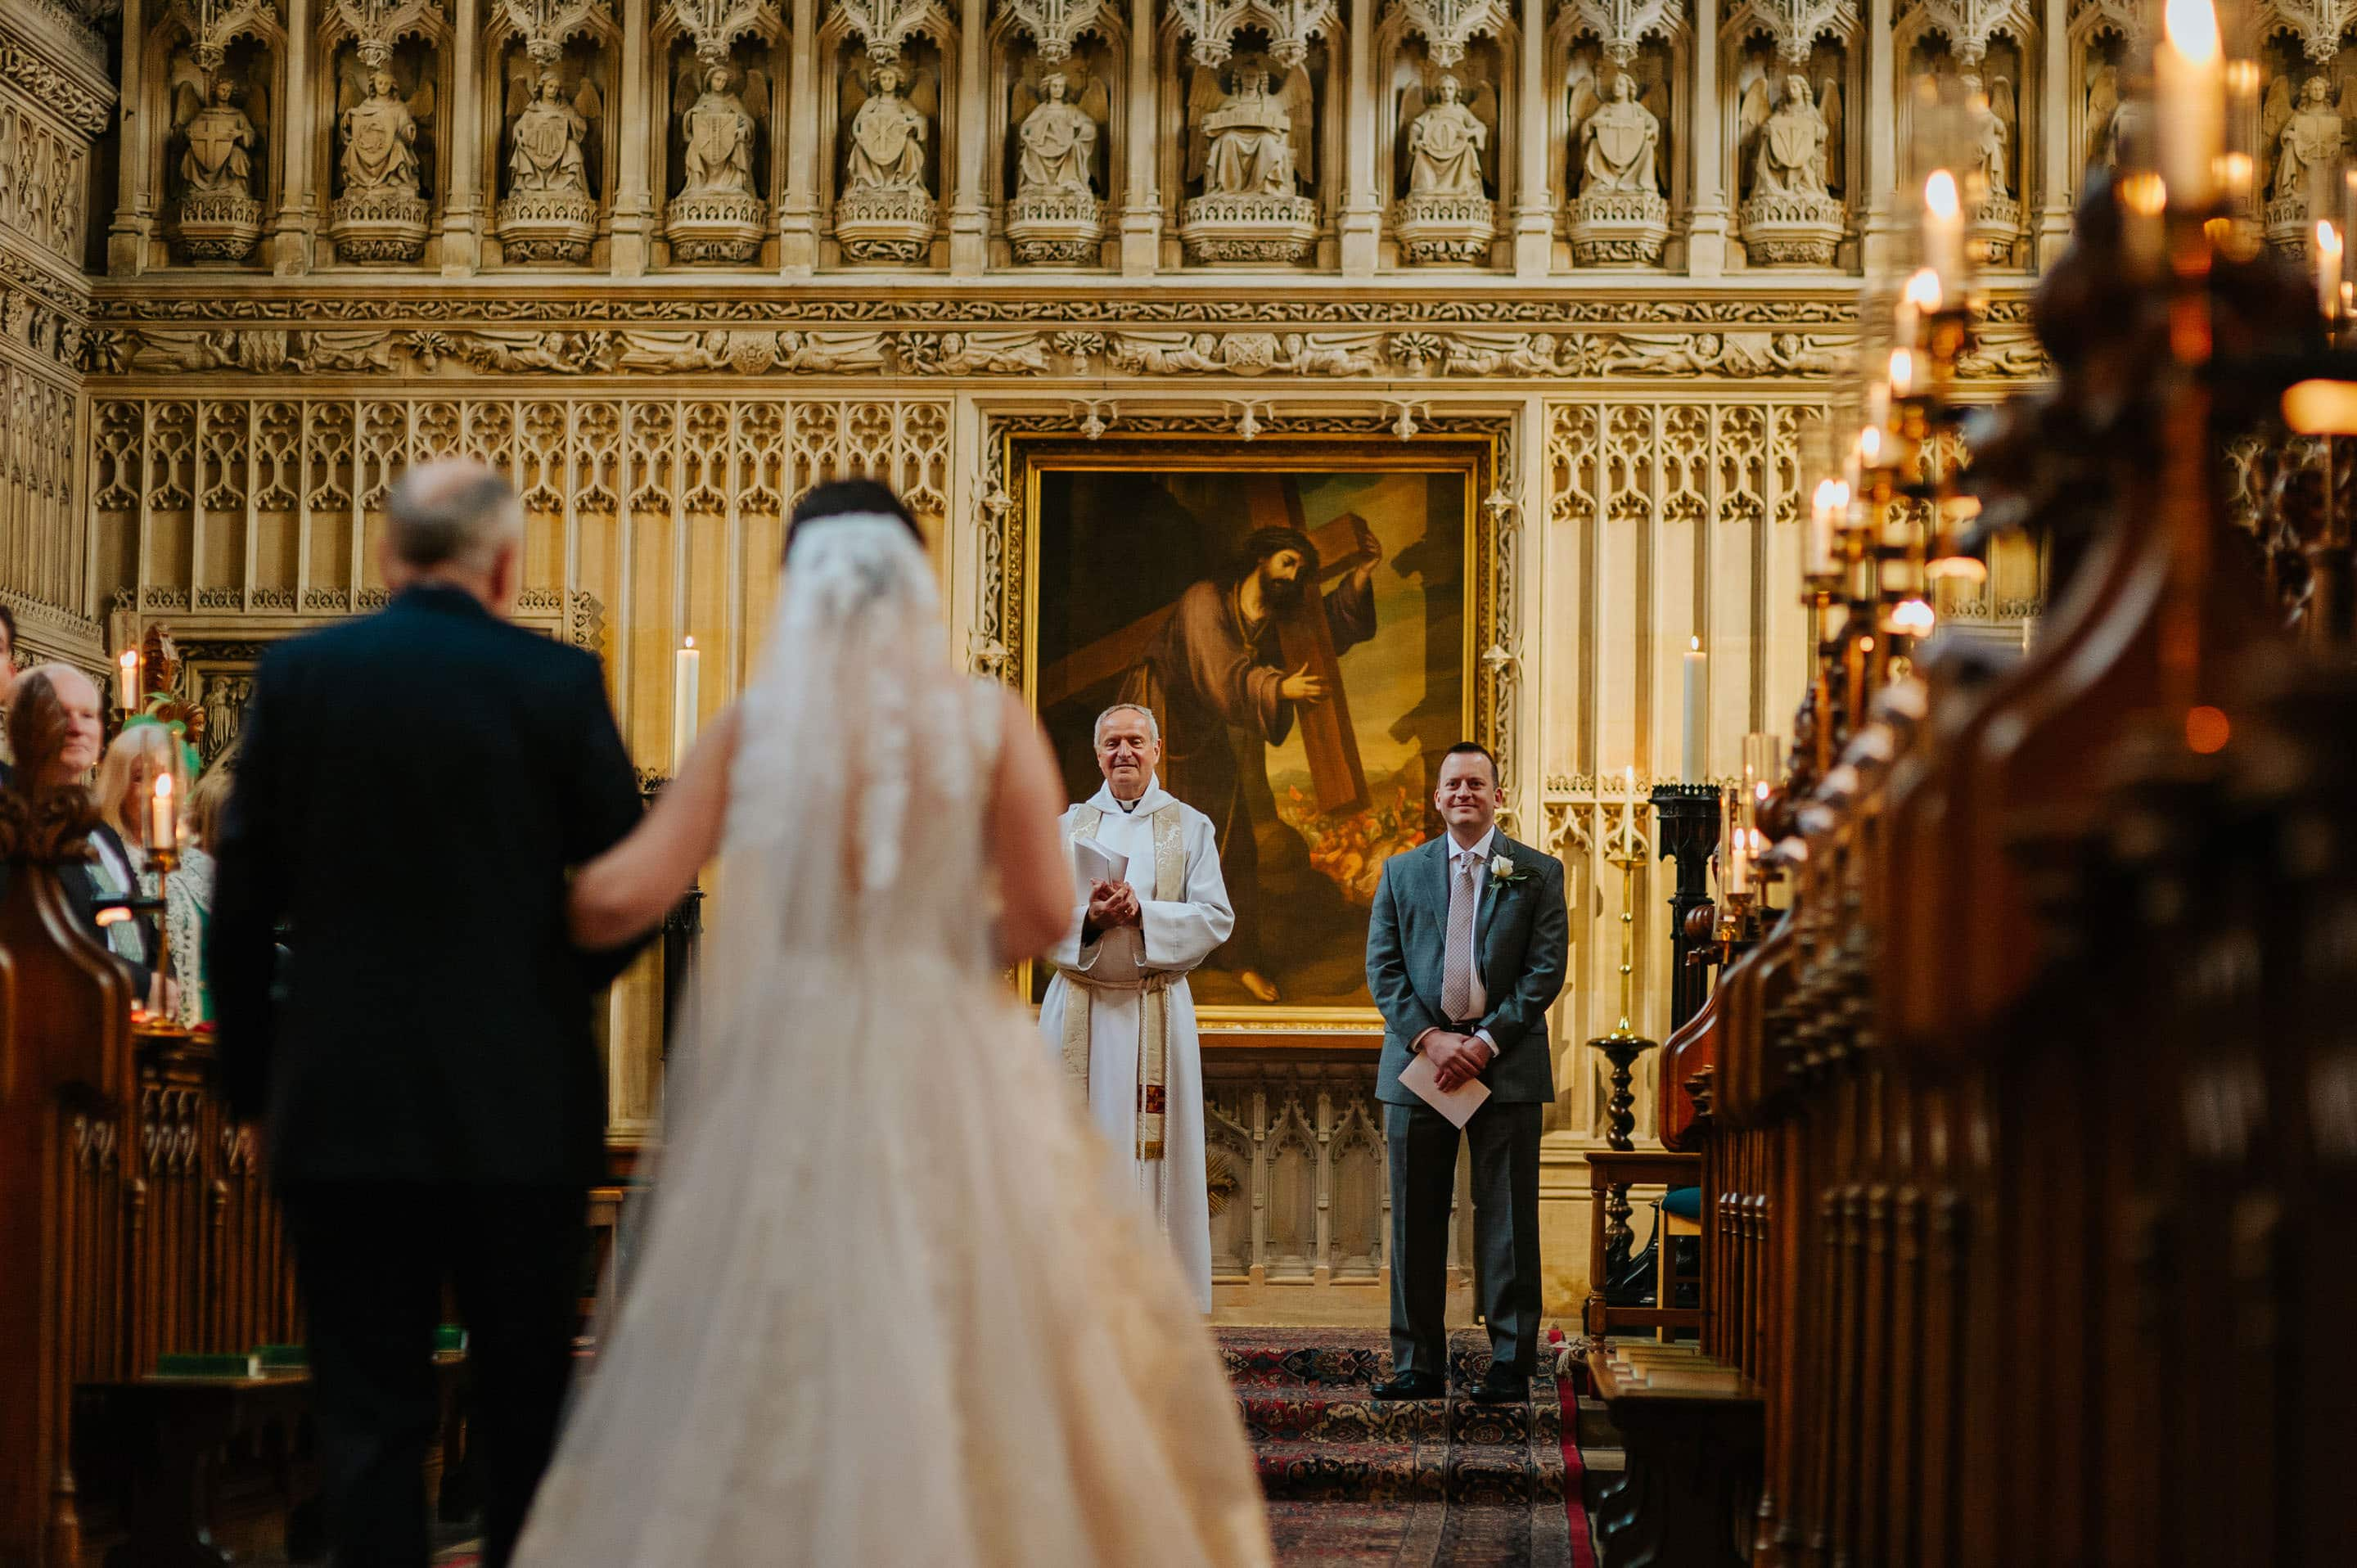 wedding at magdalen college in oxford 21 - Tommie + Virginia | Wedding at Magdalen College in Oxford